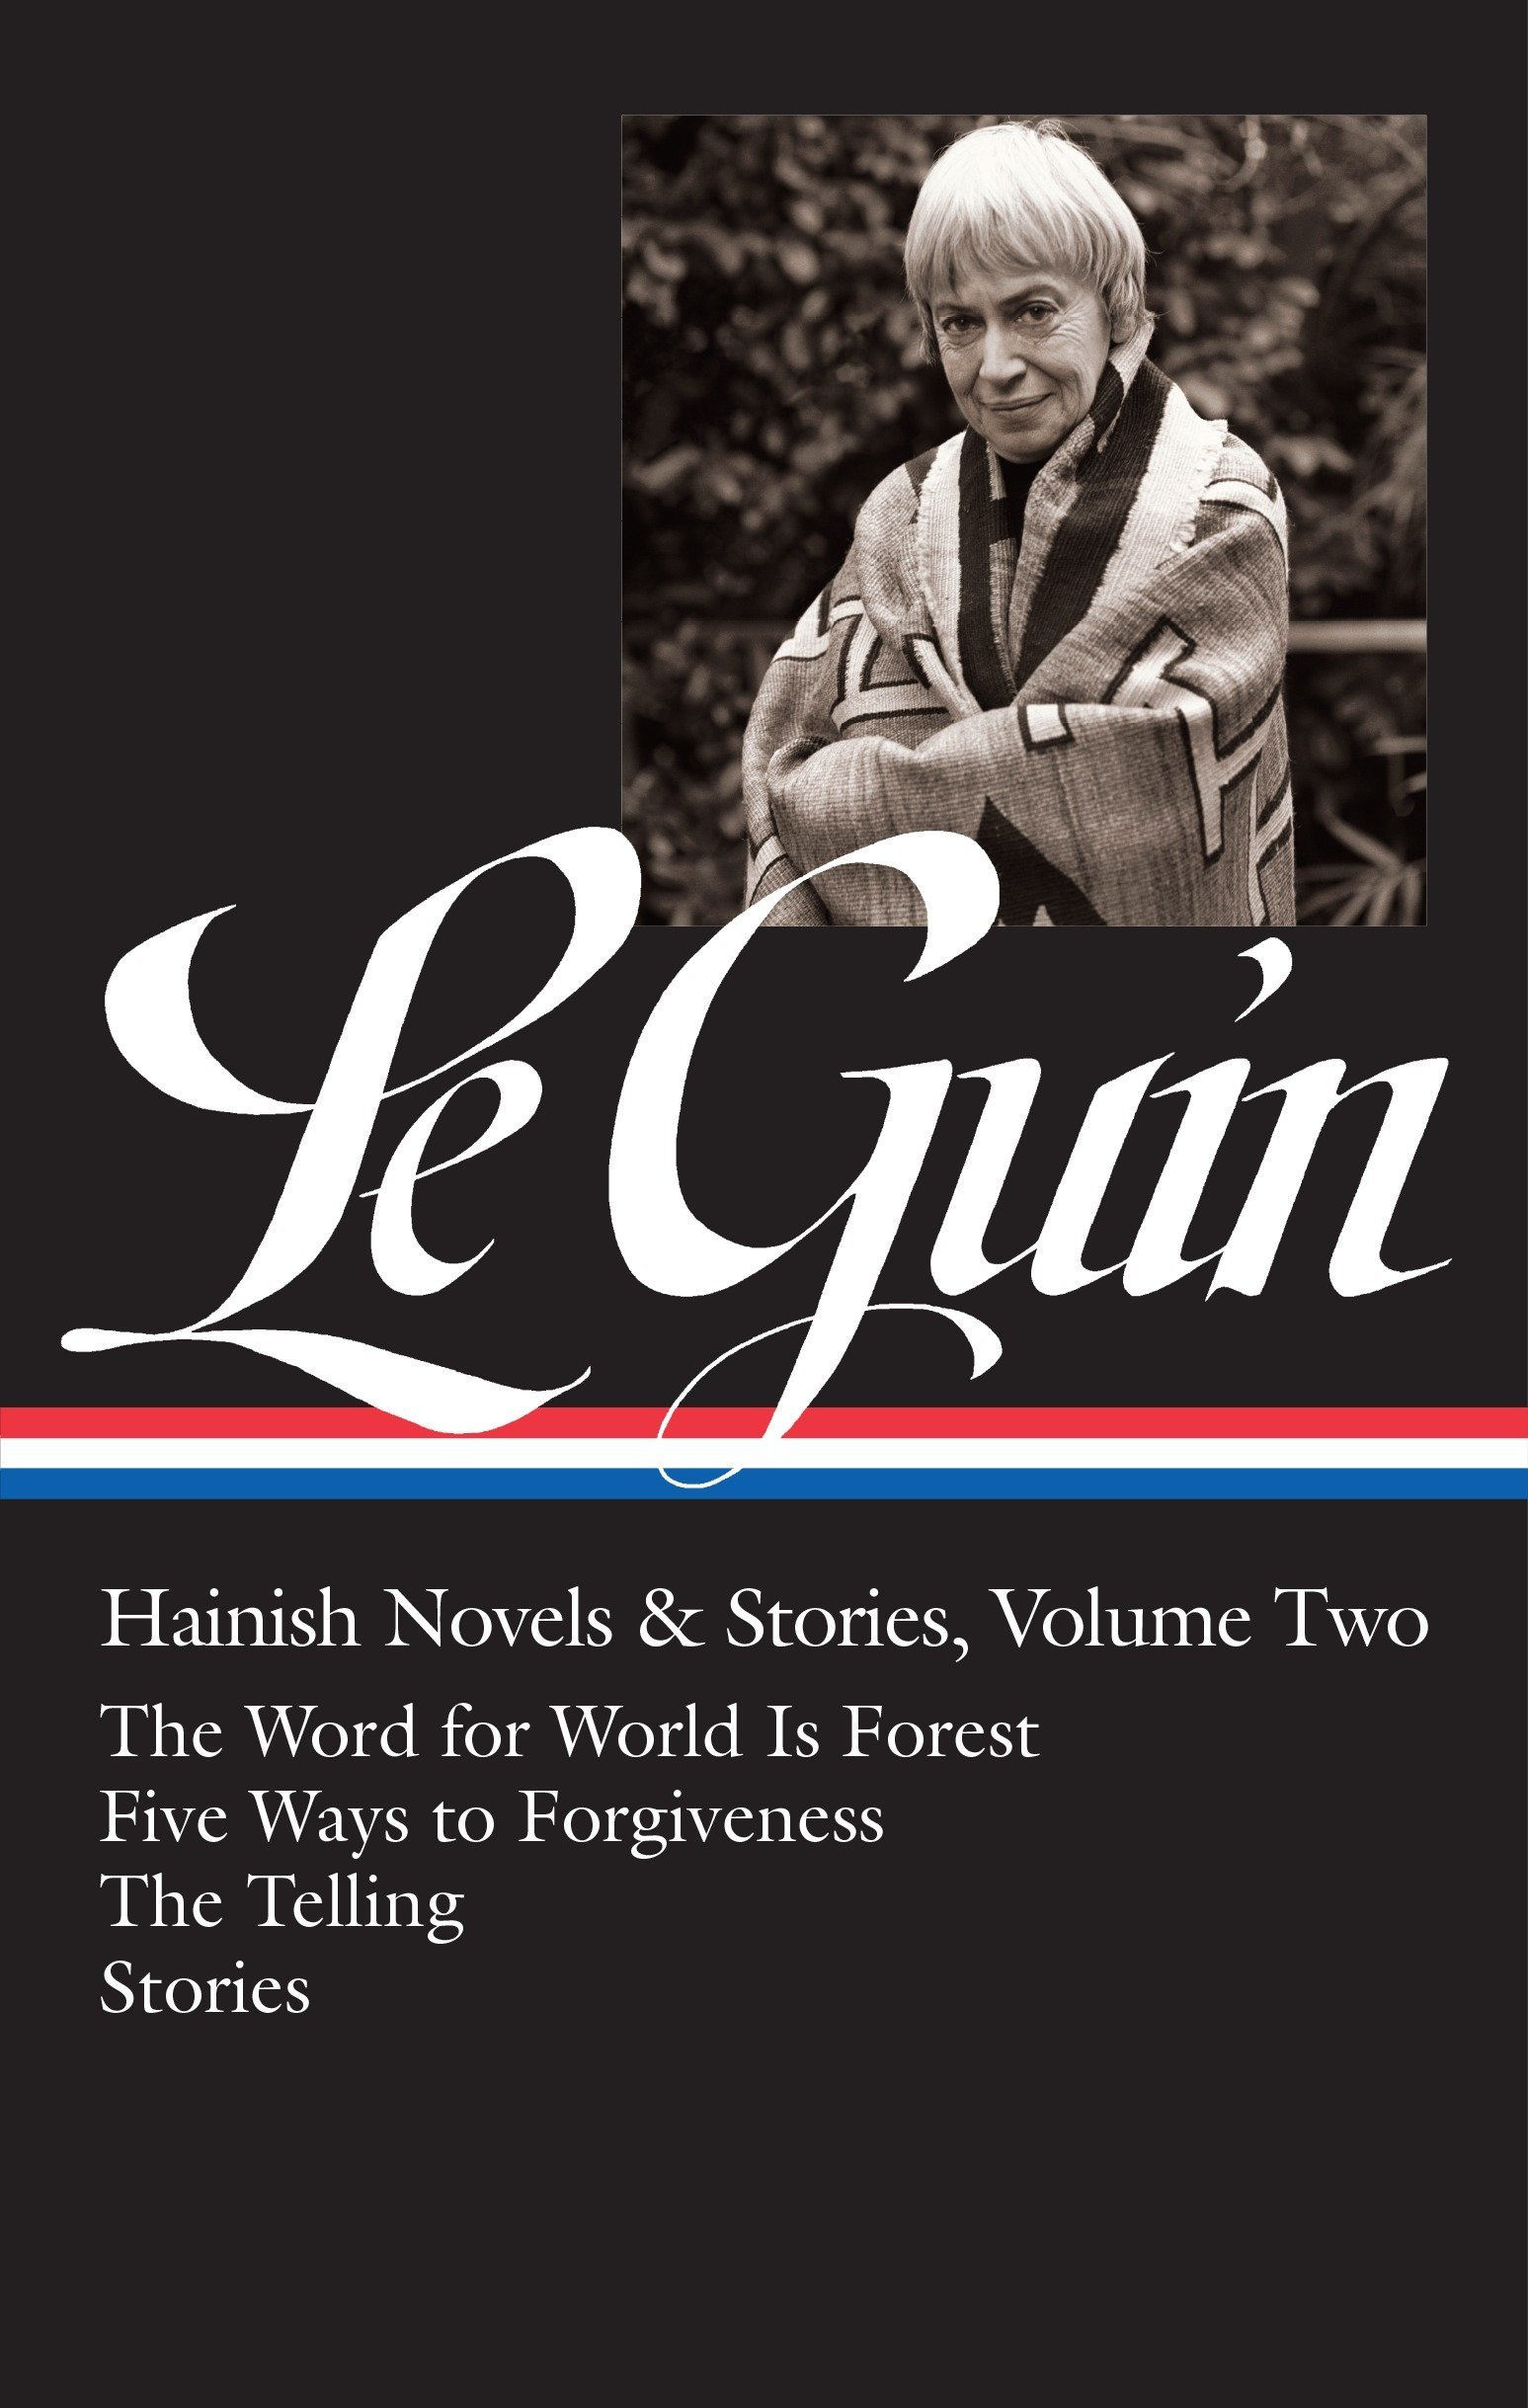 Download Ursula K. Le Guin: Hainish Novels and Stories Vol. 2 (LOA #297): The Word for World Is Forest / Five Ways to Forgiveness / The Telling / stories (Library of America Ursula K. Le Guin Edition) pdf epub